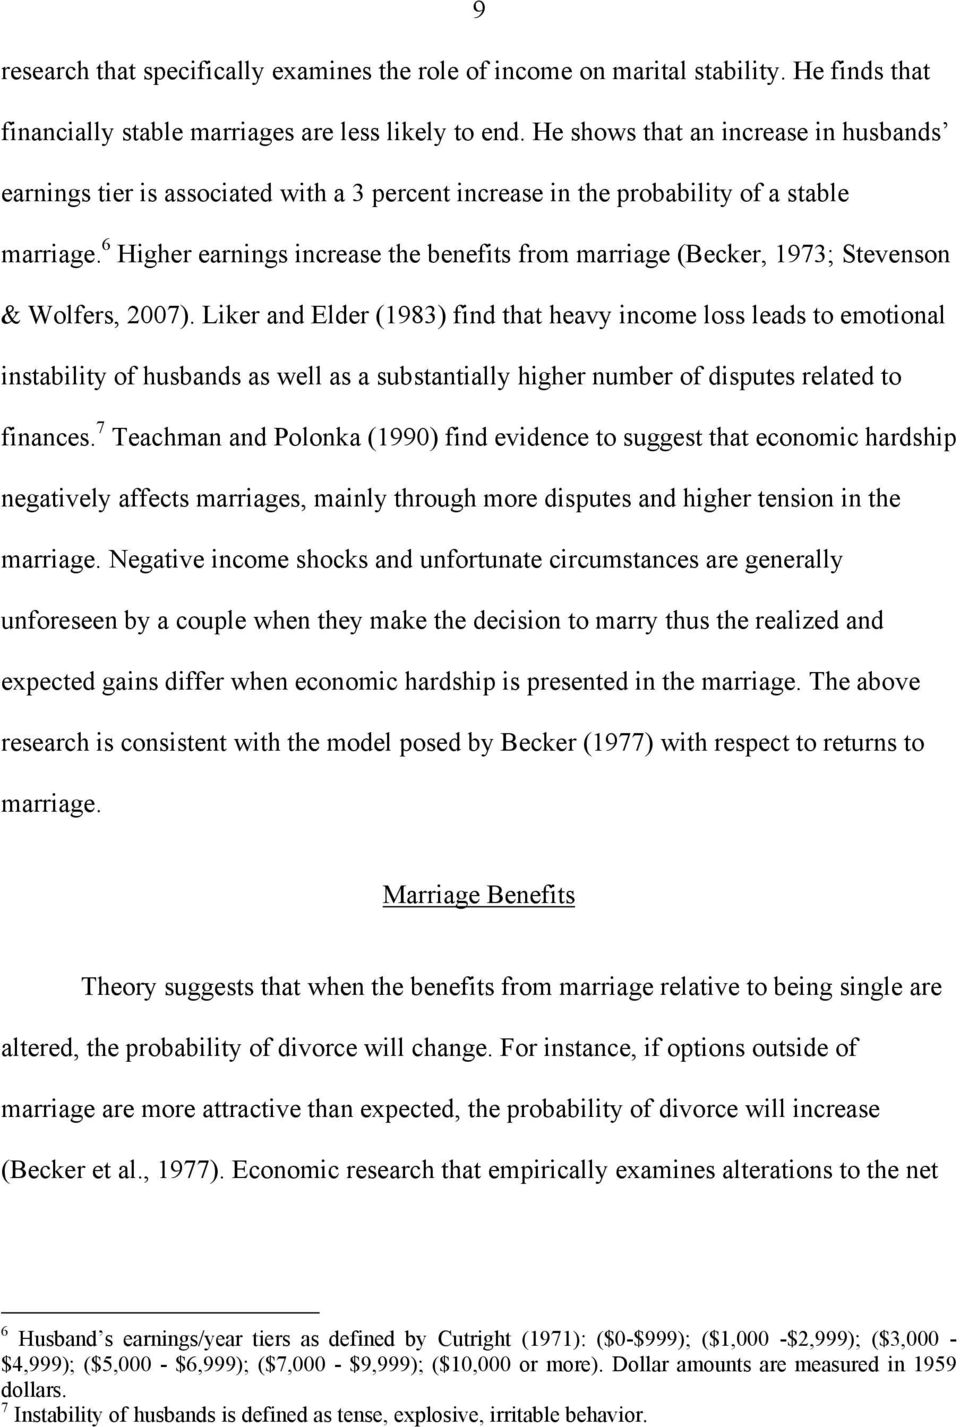 6 Higher earnings increase the benefits from marriage (Becker, 1973; Stevenson & Wolfers, 2007).